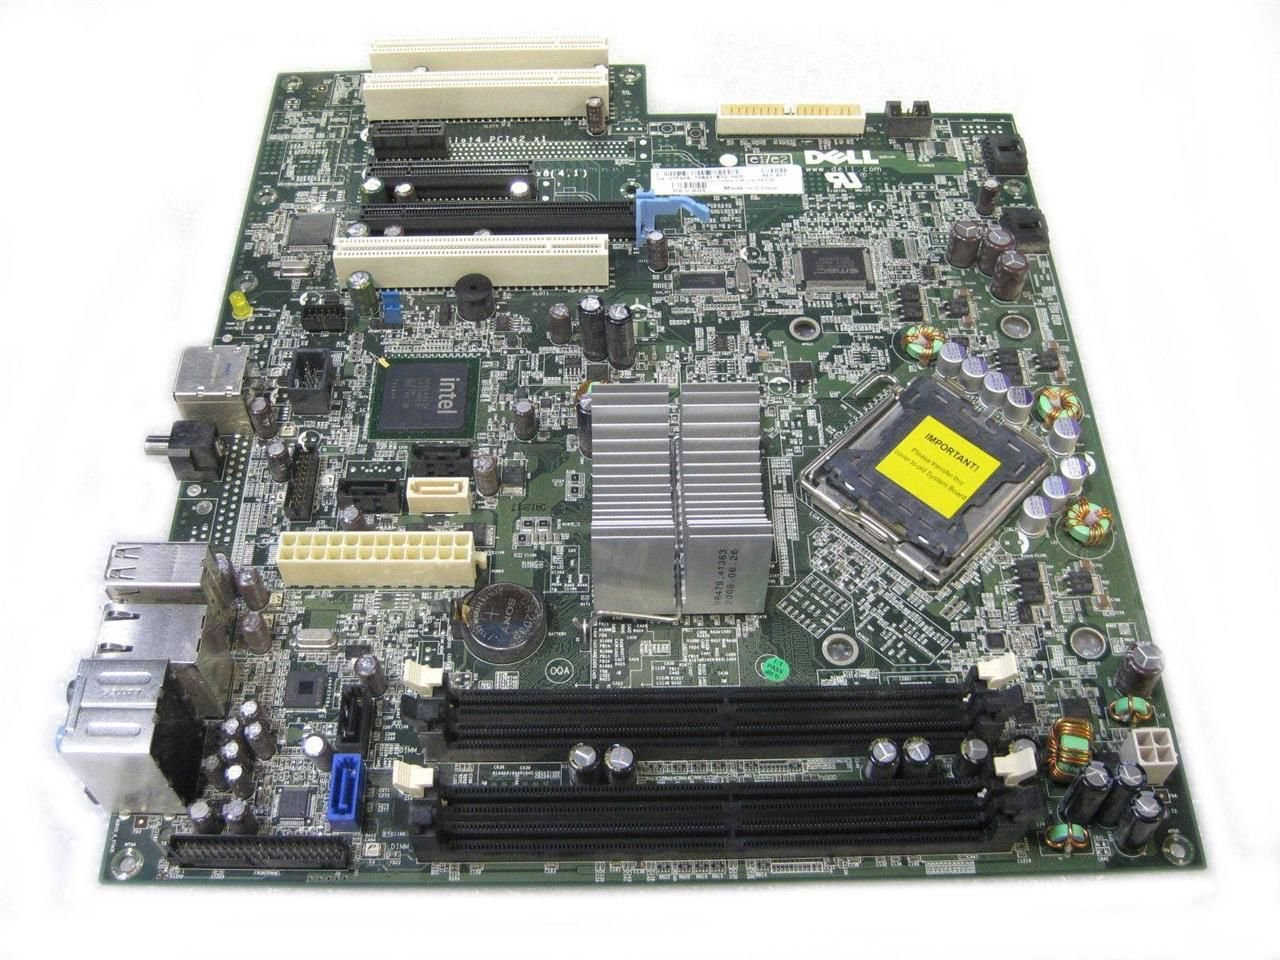 Dell Xps 8300 Wiring Diagram likewise Sincgars Radio Configurations Diagrams as well Dell Latitude D430  pal La 3741p Free furthermore Genuine Dell Xps 420 Socket Lga775 also Dell Xps 400 Diagram. on dell xps 420 diagram